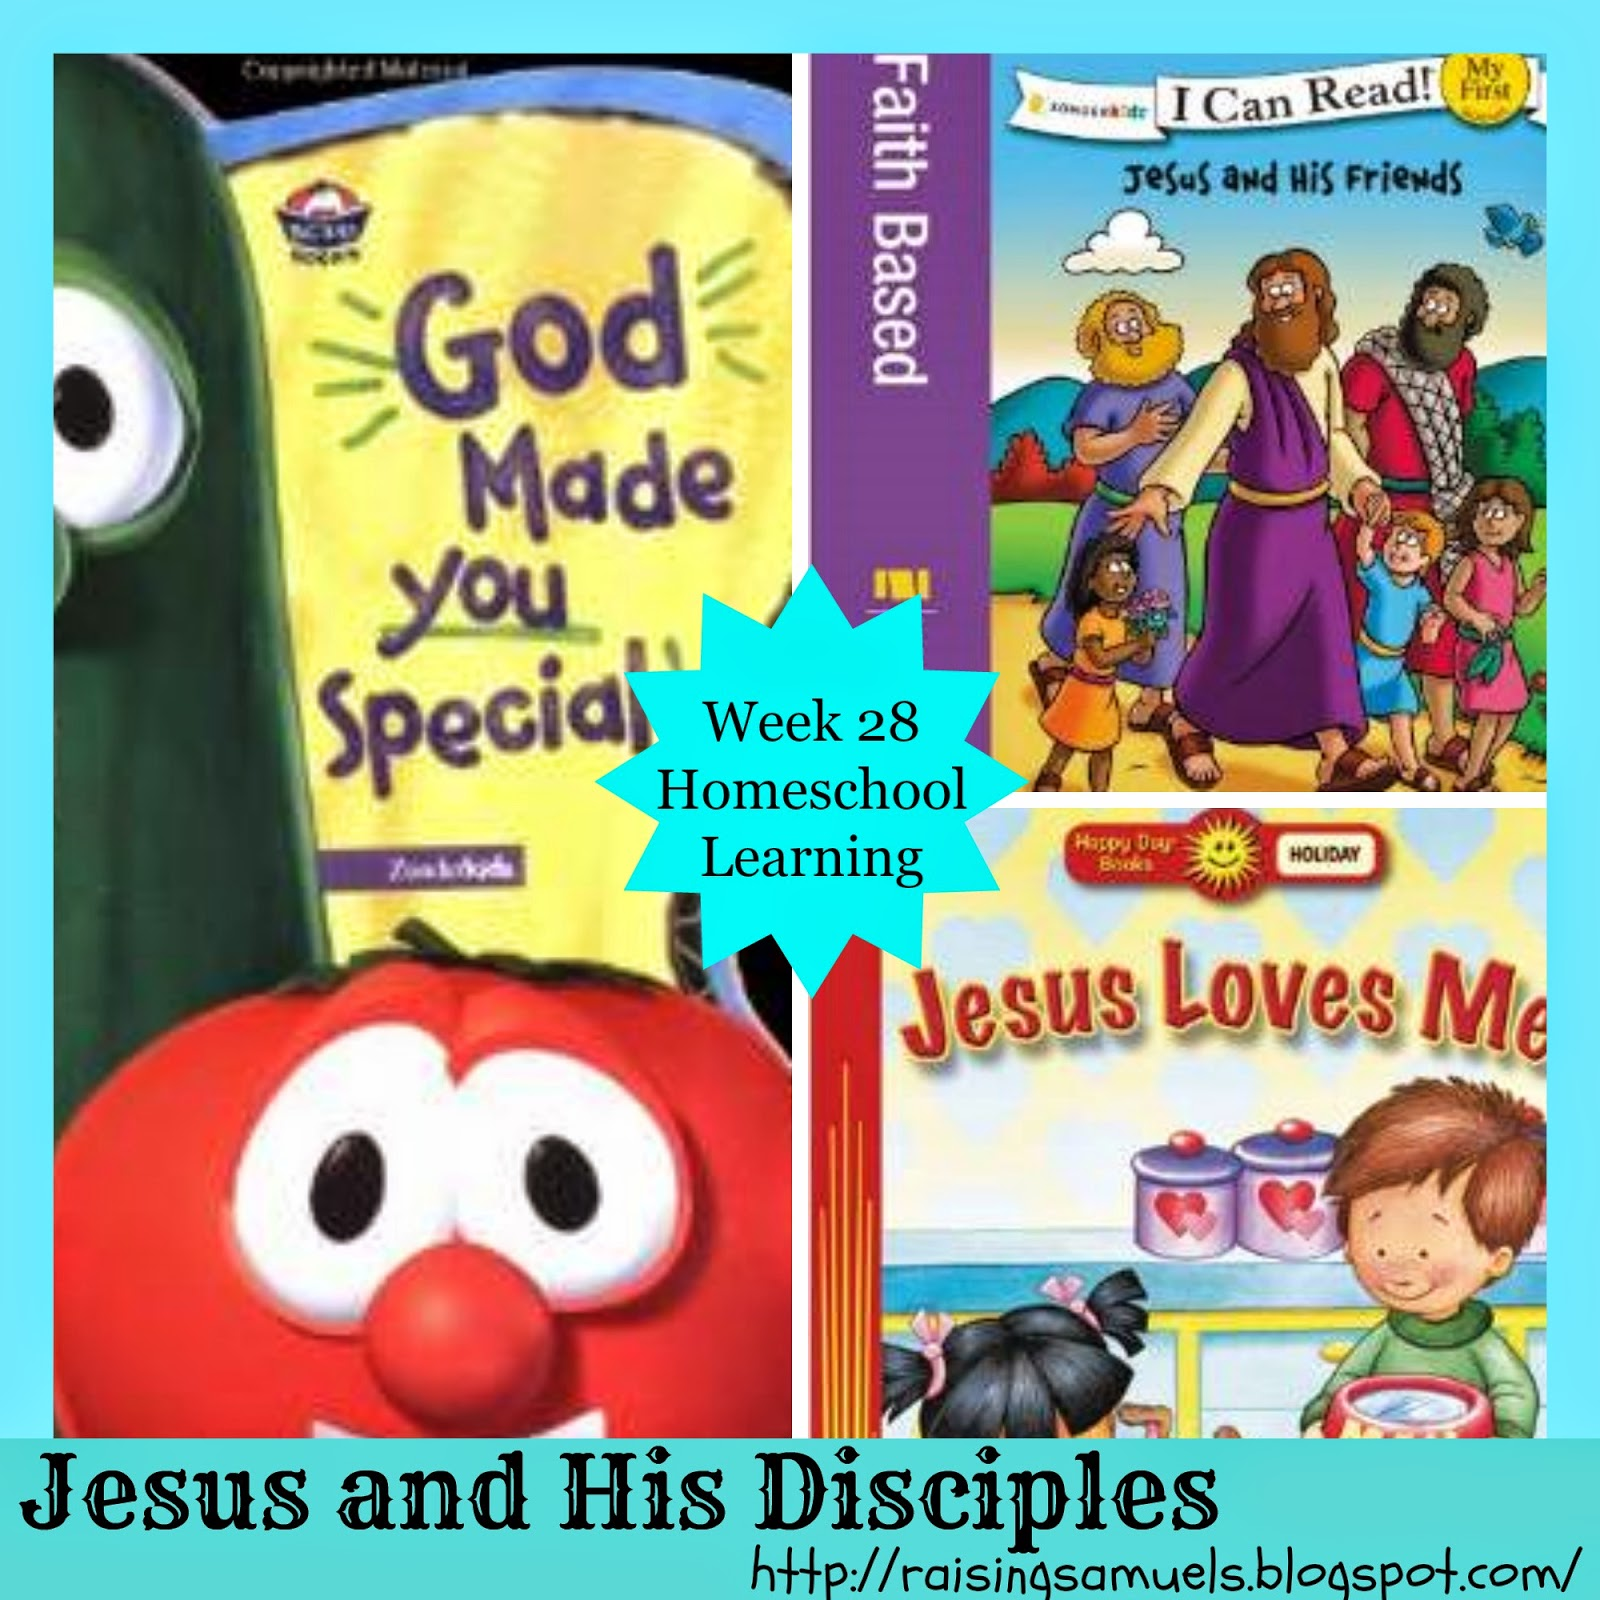 Jesus and His Disciples (Week 28 Homeschool Learning)